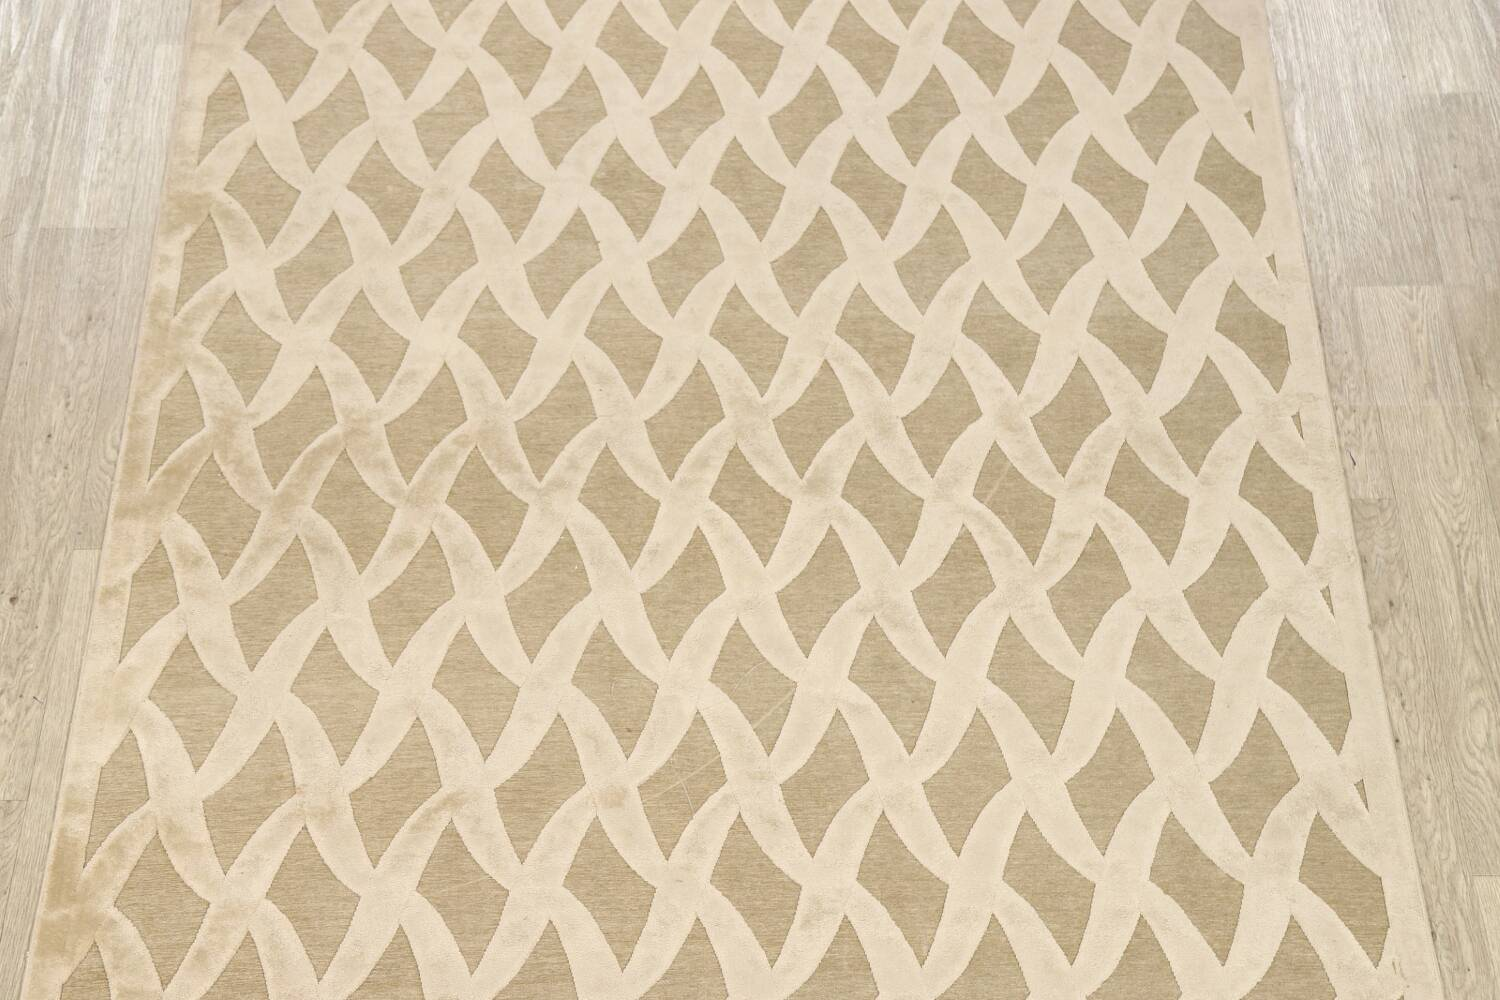 All-Over Waves Design Modern Oriental Area Rug 6x9 image 3